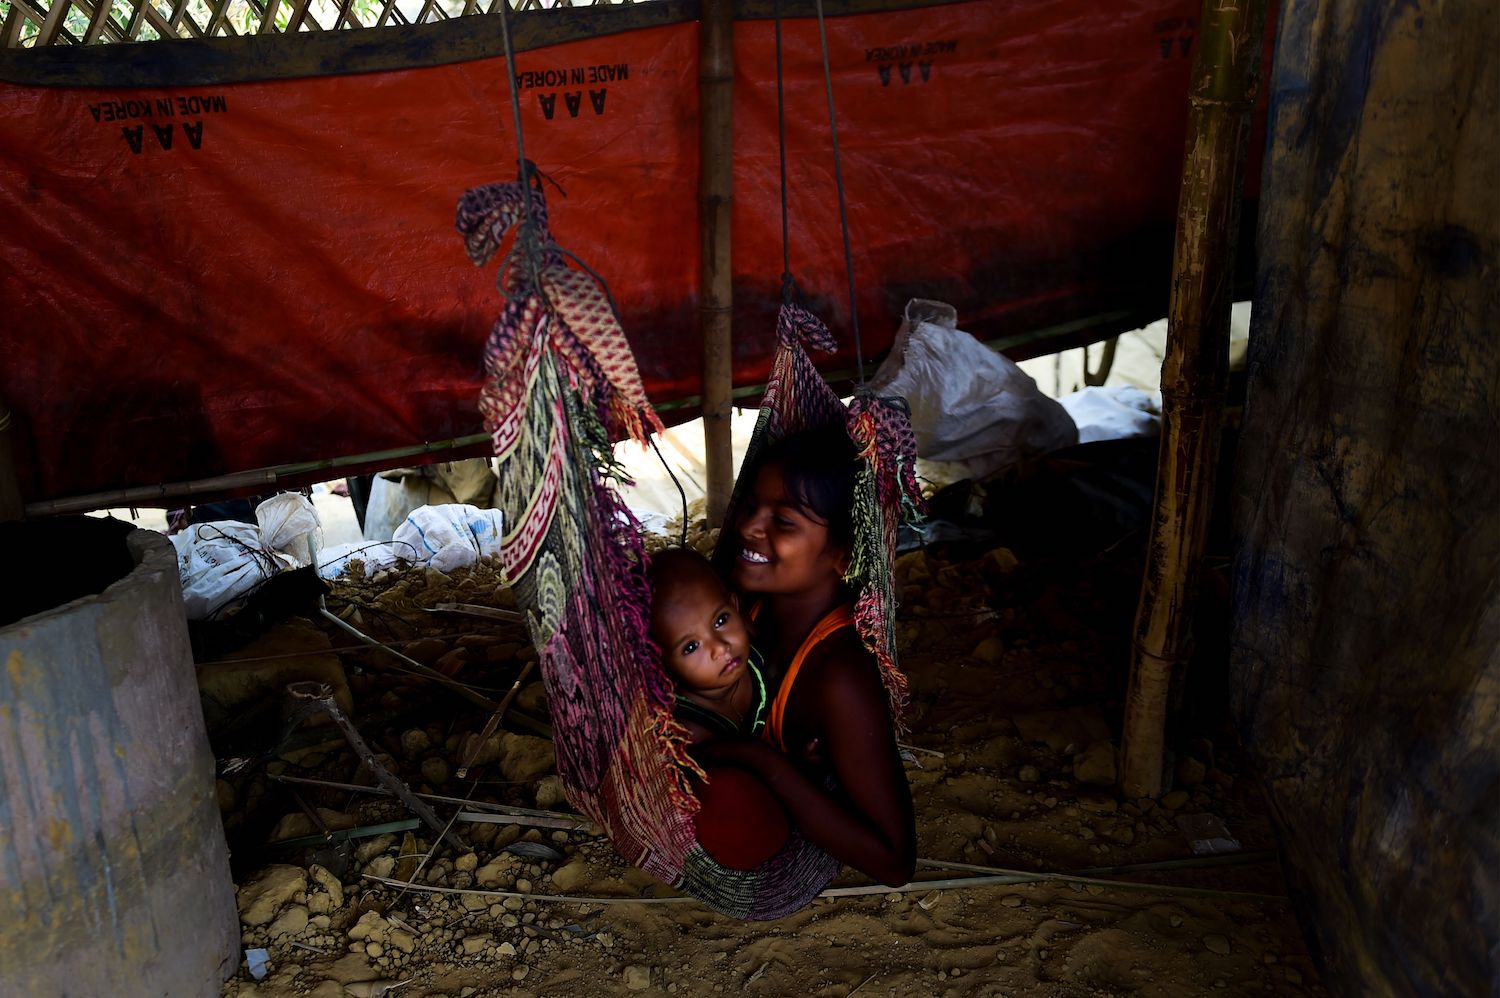 Rohingya refugee children play on a swing at Kutupalong refugee camp in Bangladesh's Ukhia district on April 9, 2018. / AFP PHOTO / MUNIR UZ ZAMAN        (Photo credit should read MUNIR UZ ZAMAN/AFP/Getty Images)